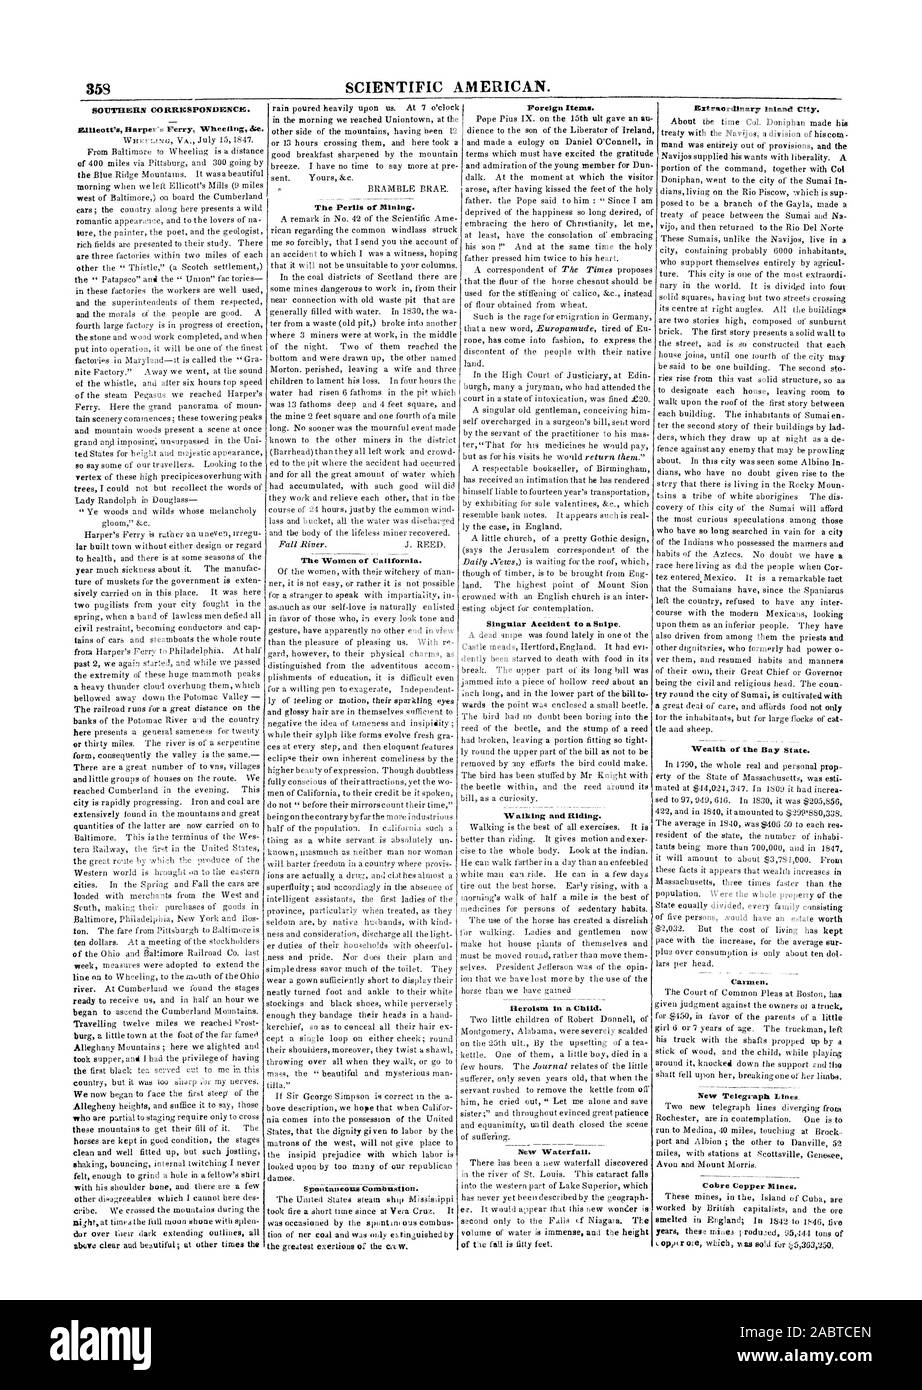 358 SCIENTIFIC AMERICAN. SOUTHERN CORRICSPON1)ENC10. Ellicott' Harper's Ferry Wheeling Ar.e. The Perils or Mining. The Women of California. Spontaneous Combustion. Foreign Items. Singular Accident to a Snipe. Walking and Riding. Heroism in a Child. New Waterfall. Wealth of the Bay State. Carmen. New Telegraph Lines. Cobra Copper Mines., 1847-07-31 Stock Photo